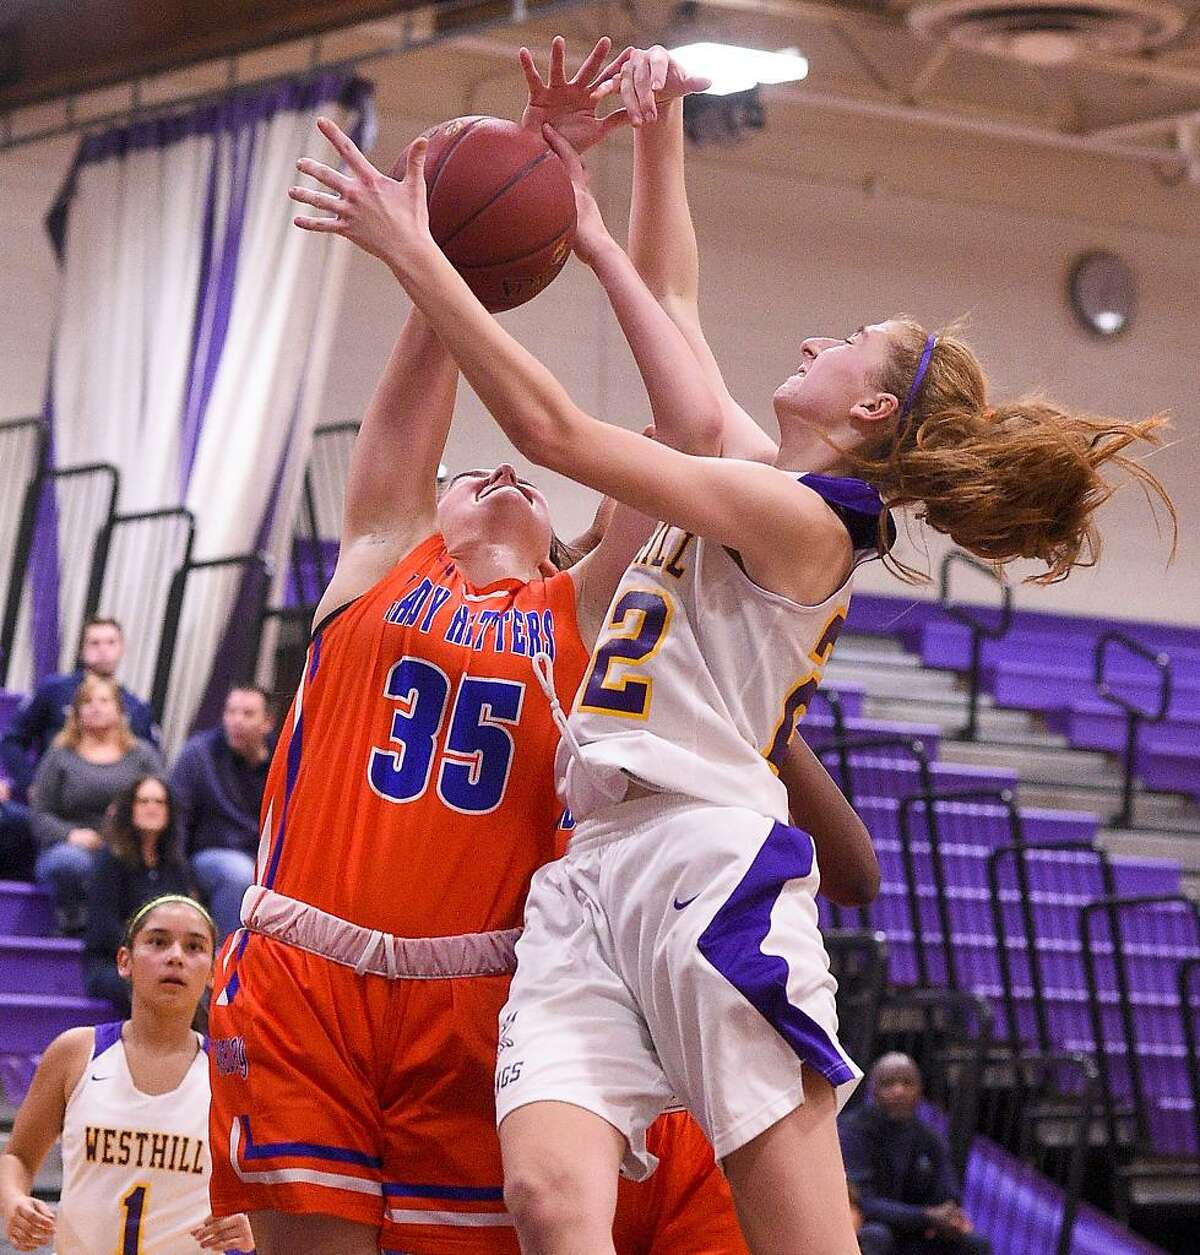 Danbury's Emily Grenier (35) fights for a rebound with Westhill's Grace Hansen (22) during a FCIAC girls basketball game at Westhill High School in Stamford, Conn. on Thursday, Jan. 11, 2018.